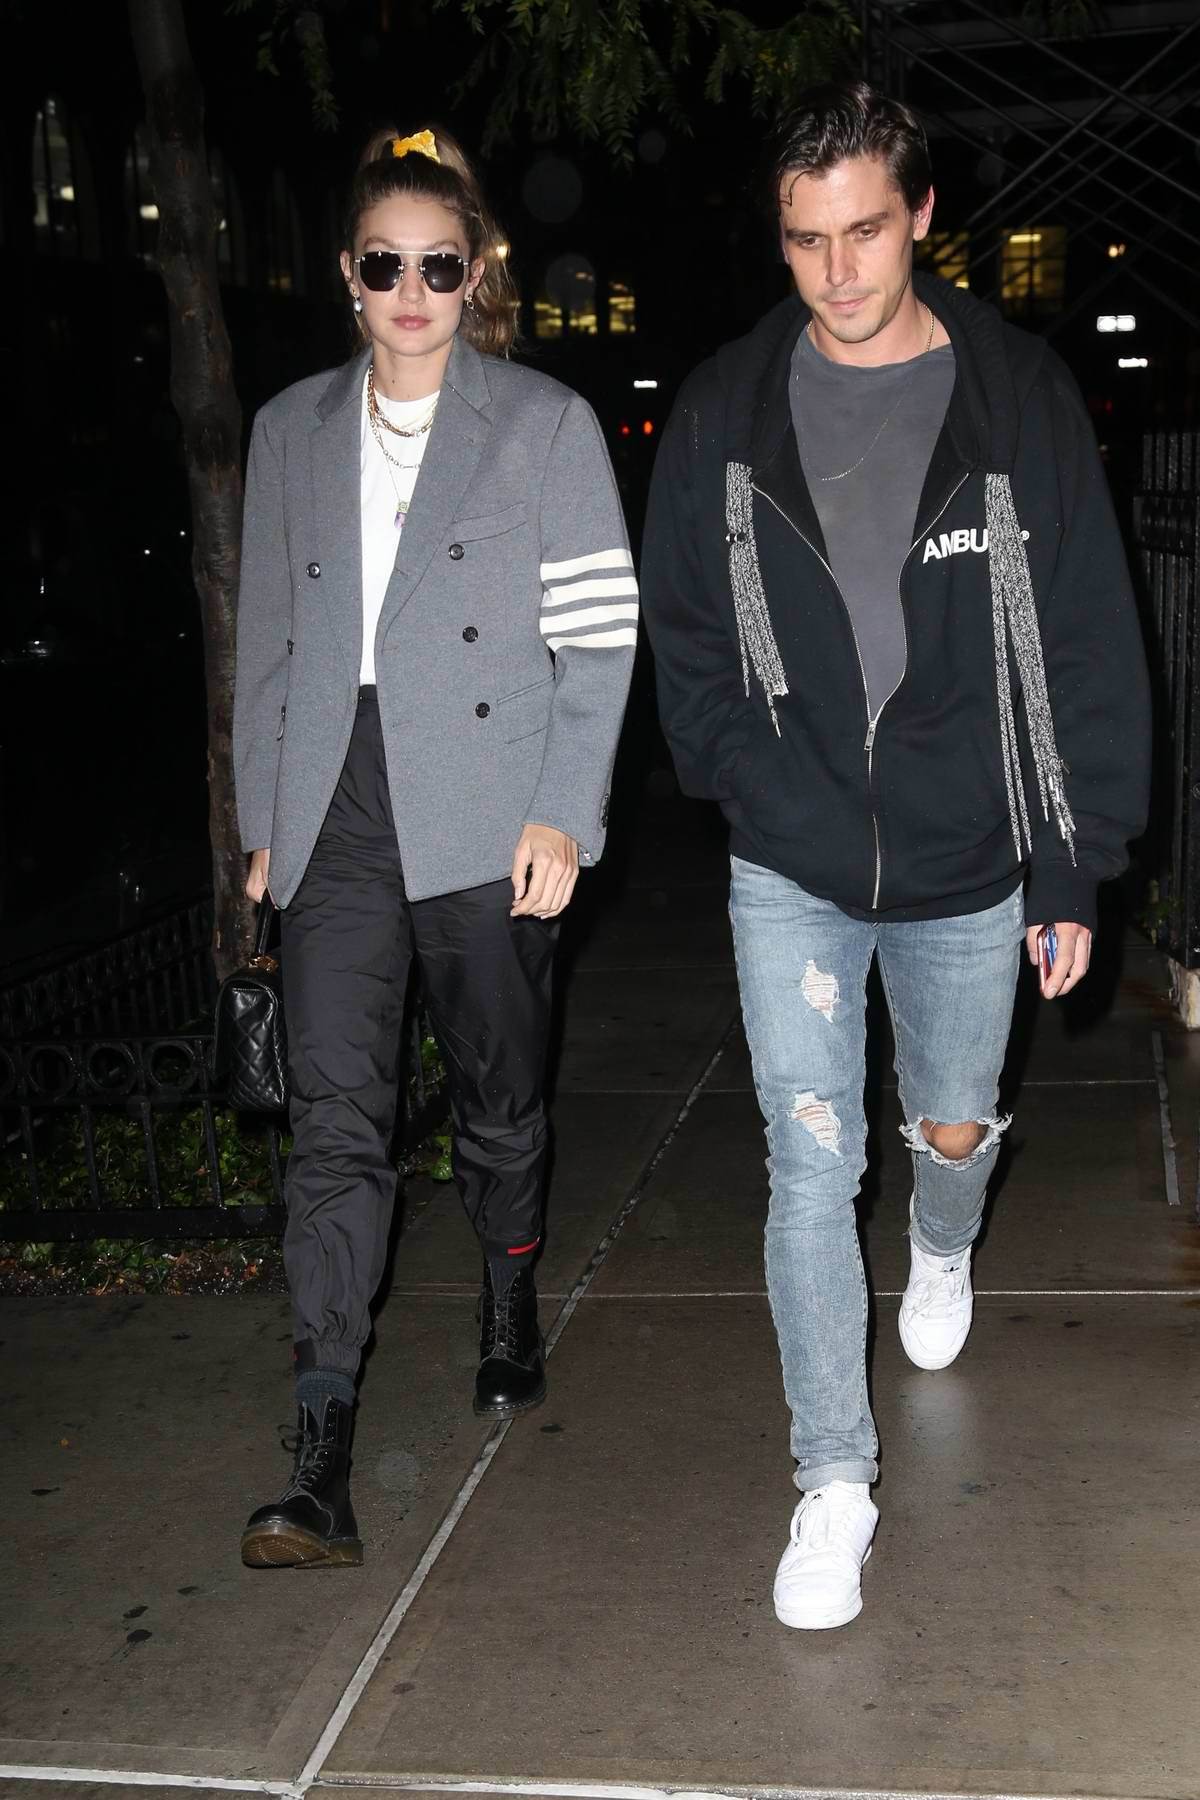 Gigi Hadid and Antoni Porowski spotted during a night out in New York City